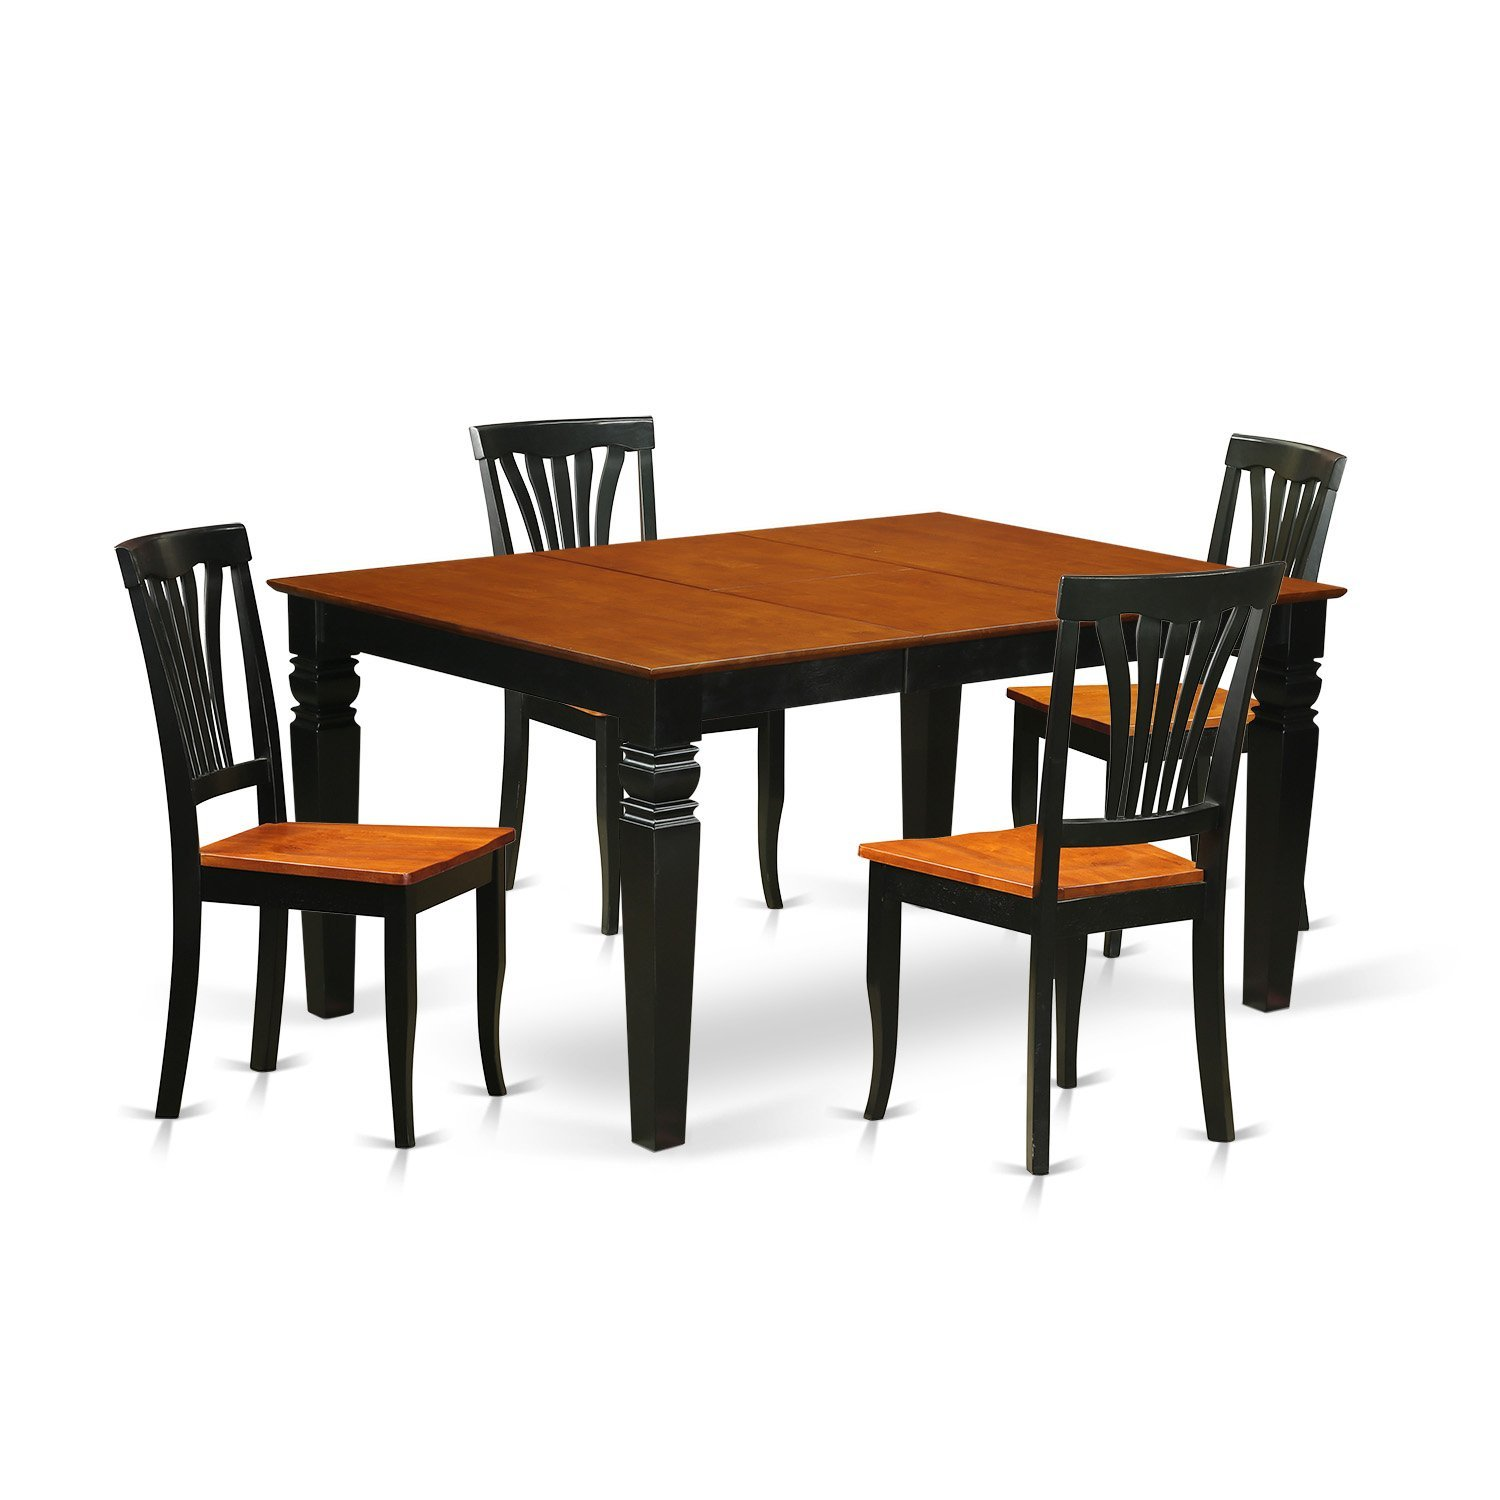 East West Furniture Weston WEAV5-BCH-W 7 Pc Dinette Set with a Dinning Table and 6 Wood Dining Chairs, Black